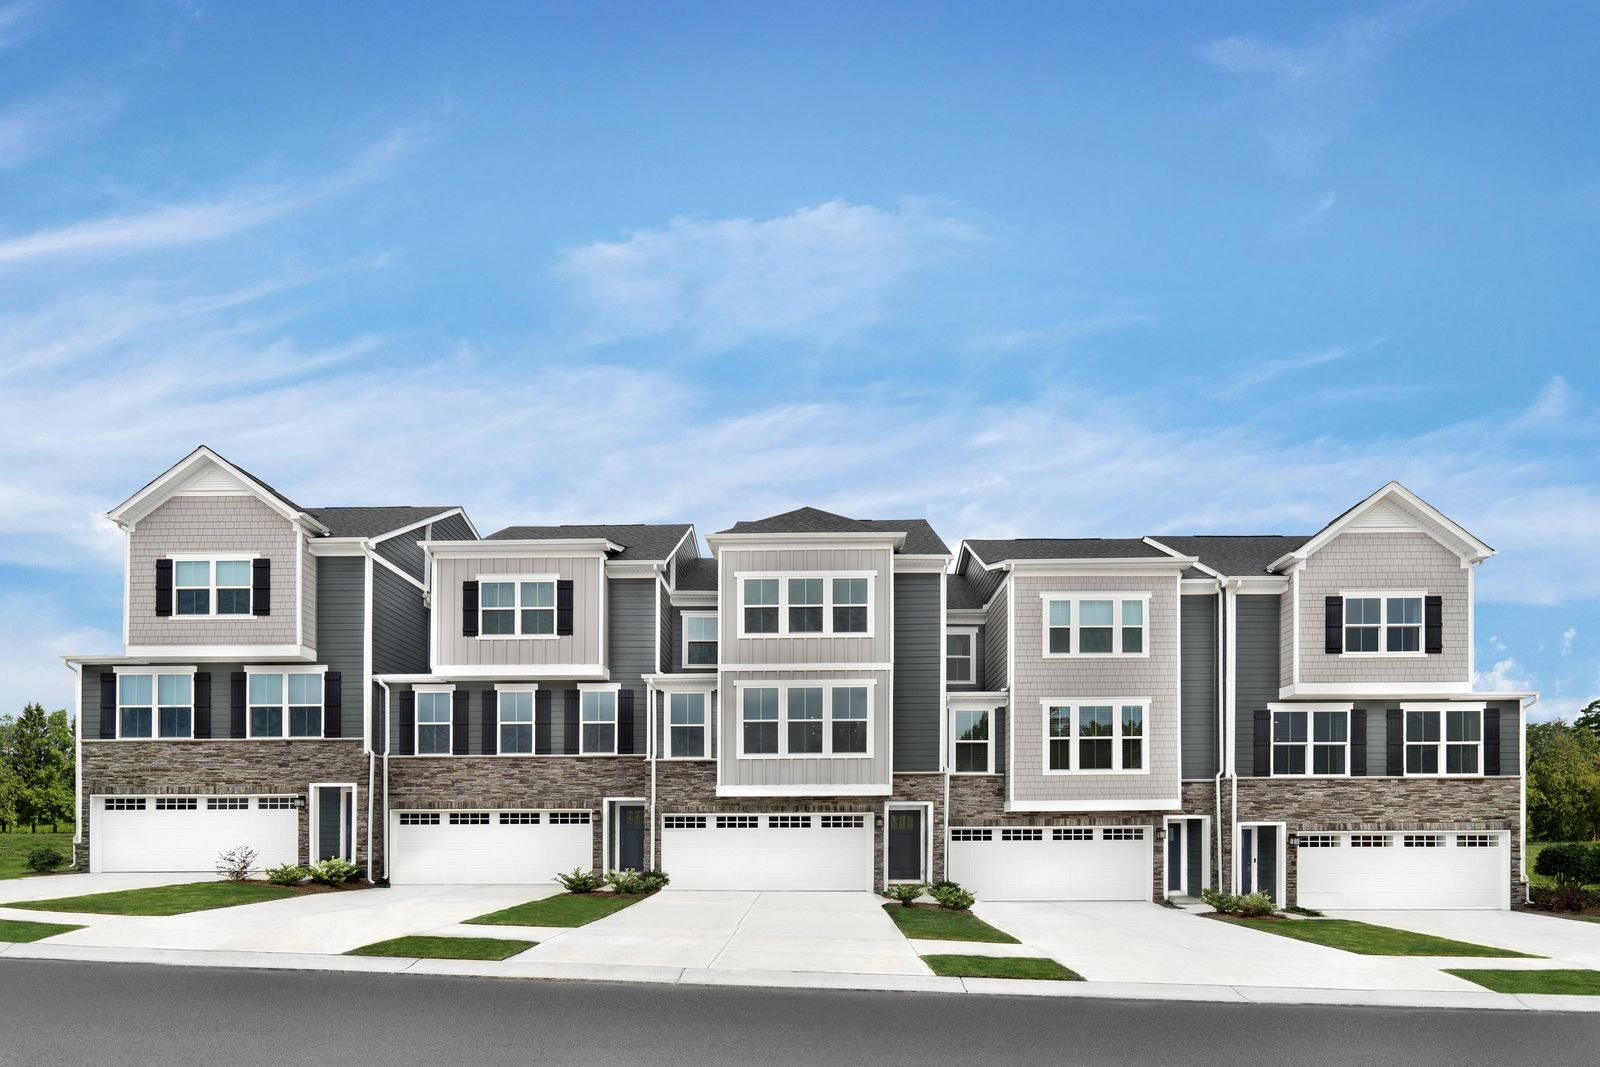 Welcome home to The Landing:The only new townhomes with luxury features included in the best South Hills location. Less than 1 minute to McMurray & 2 miles to I-79. From mid $300s.Click here to join the VIP List.